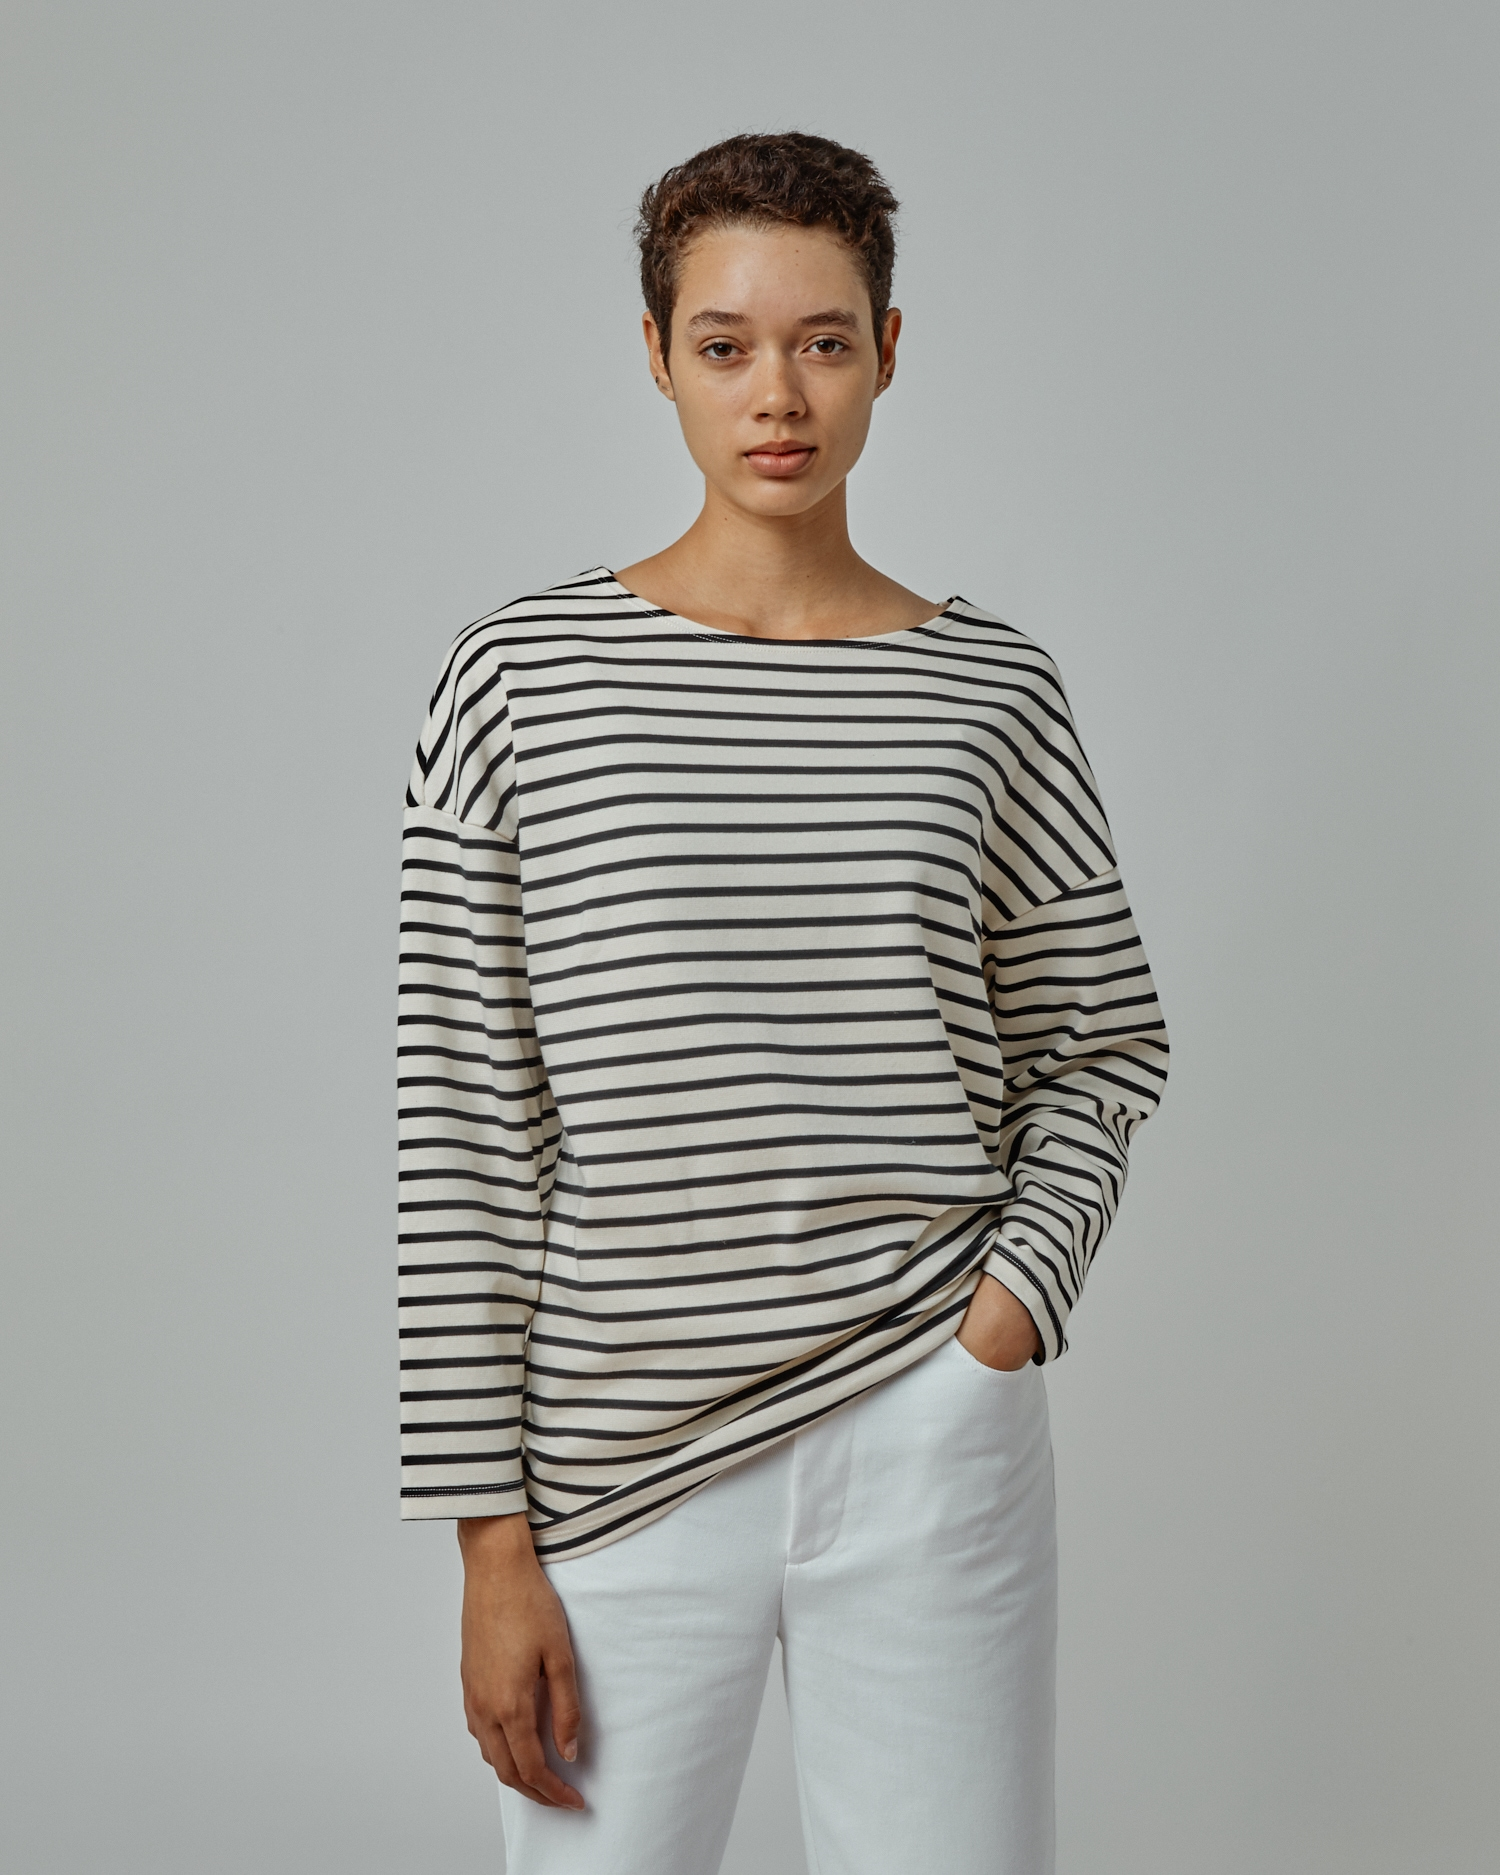 Shop Boat Neck Top. On Sale!